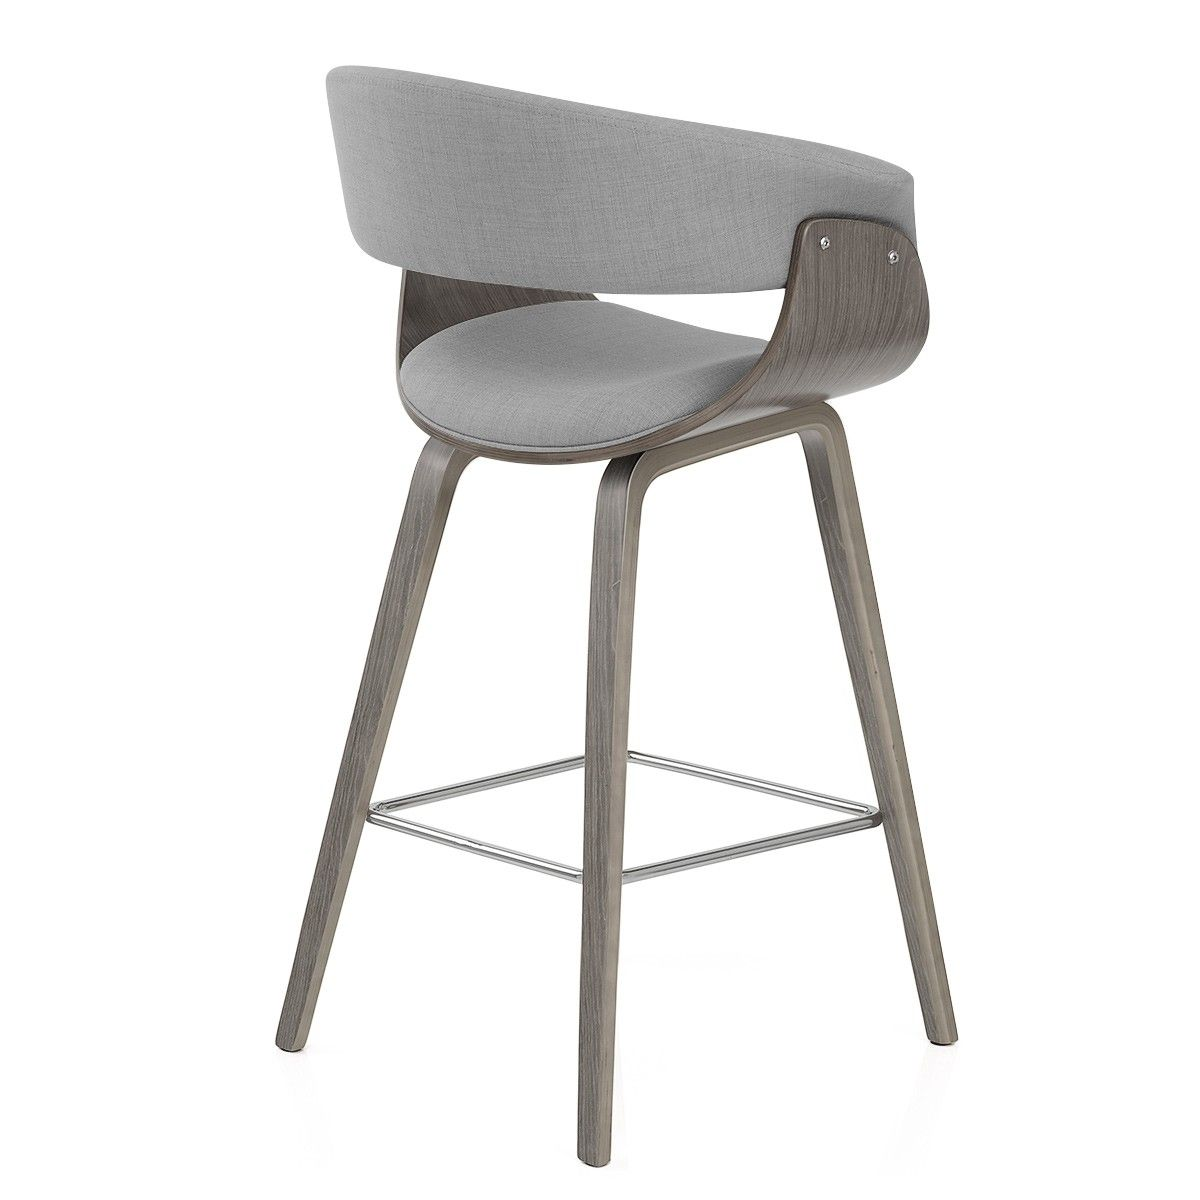 Magnificent Alexis Wooden Stool Grey Fabric B Buy For D53 In 2019 Ncnpc Chair Design For Home Ncnpcorg